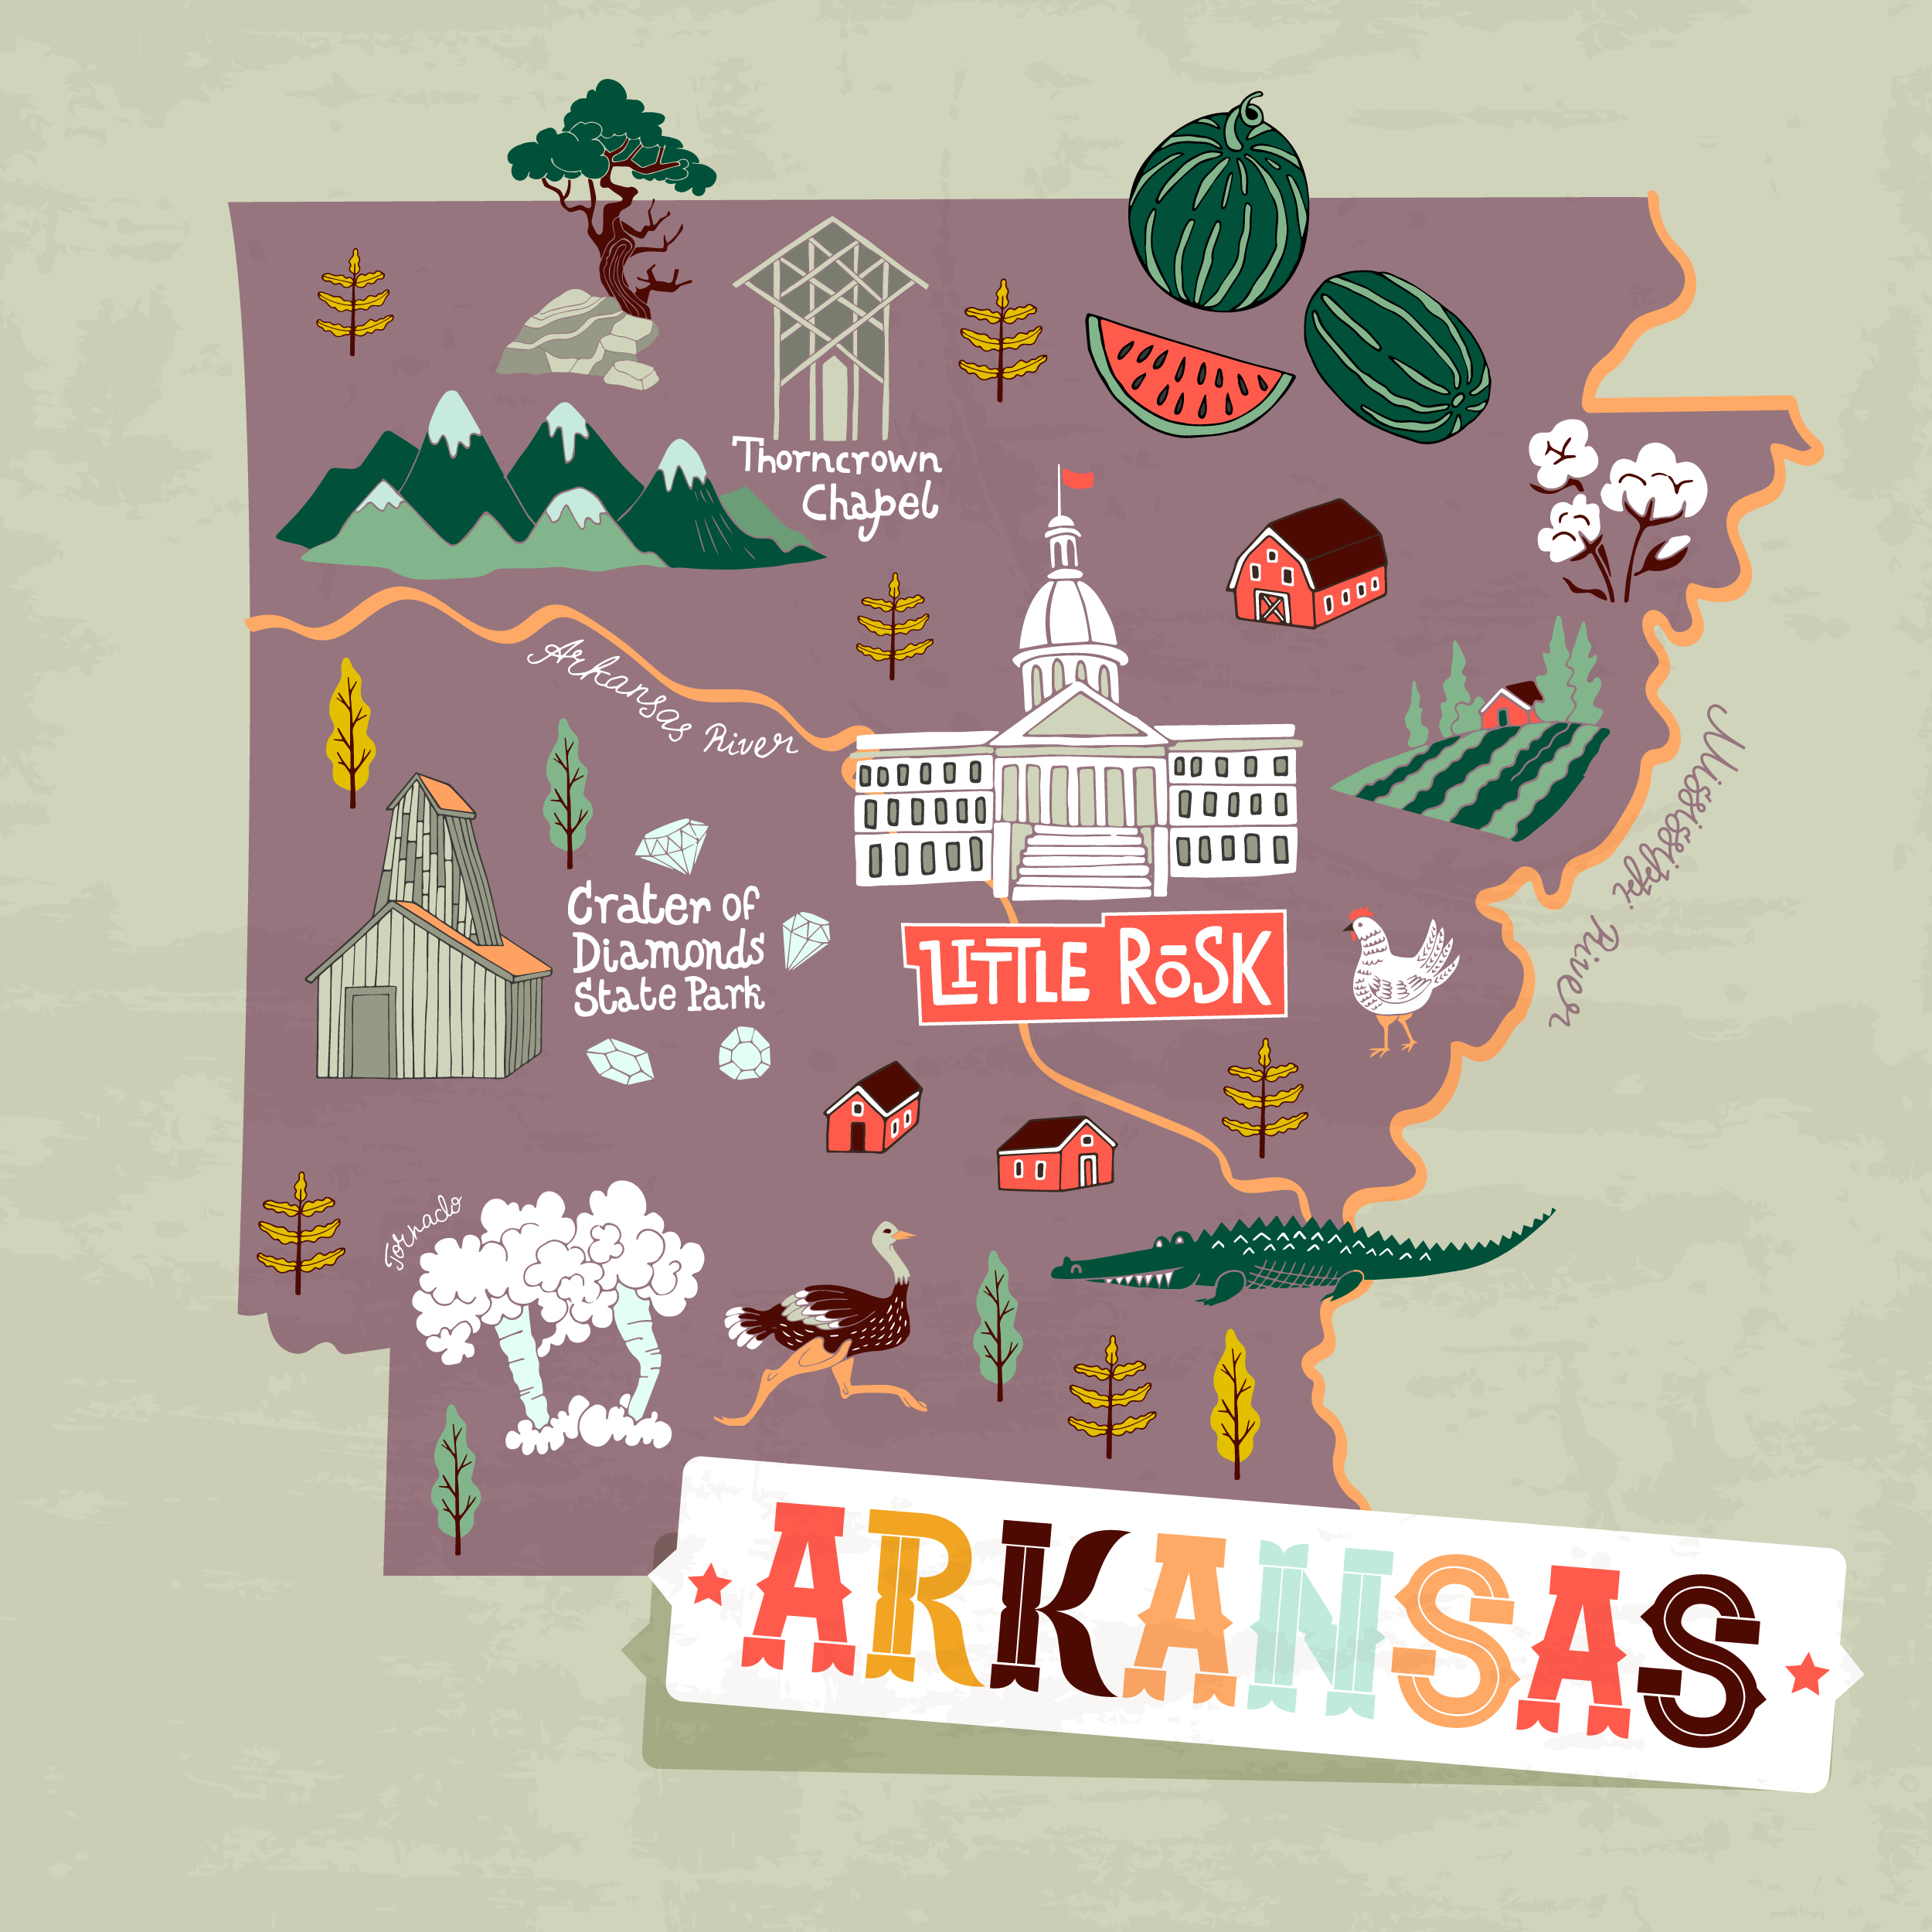 Arkansas medical marijuana